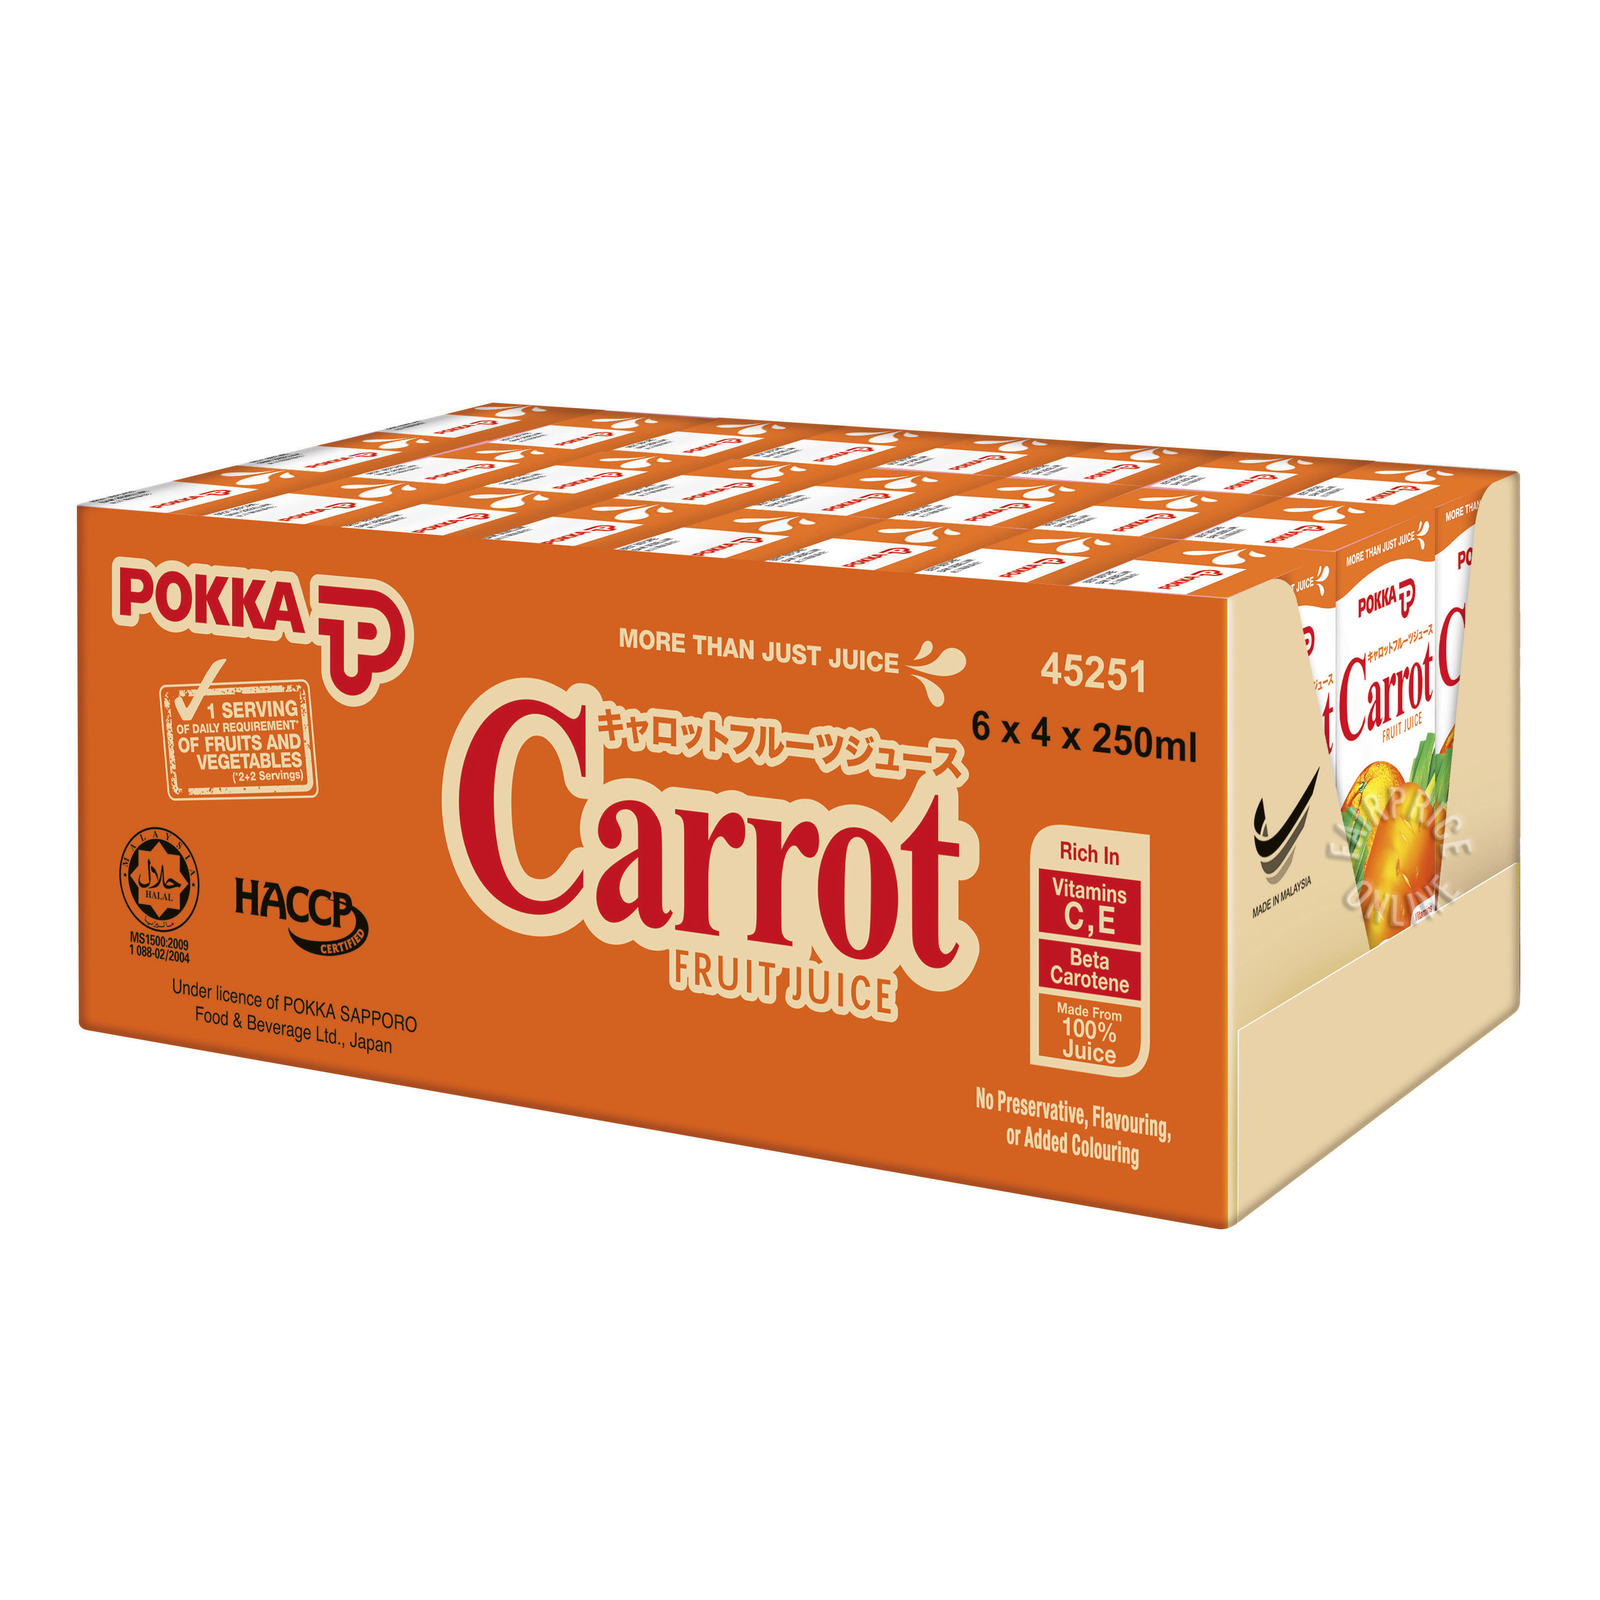 Pokka Packet Drink - Carrot Fruit Juice